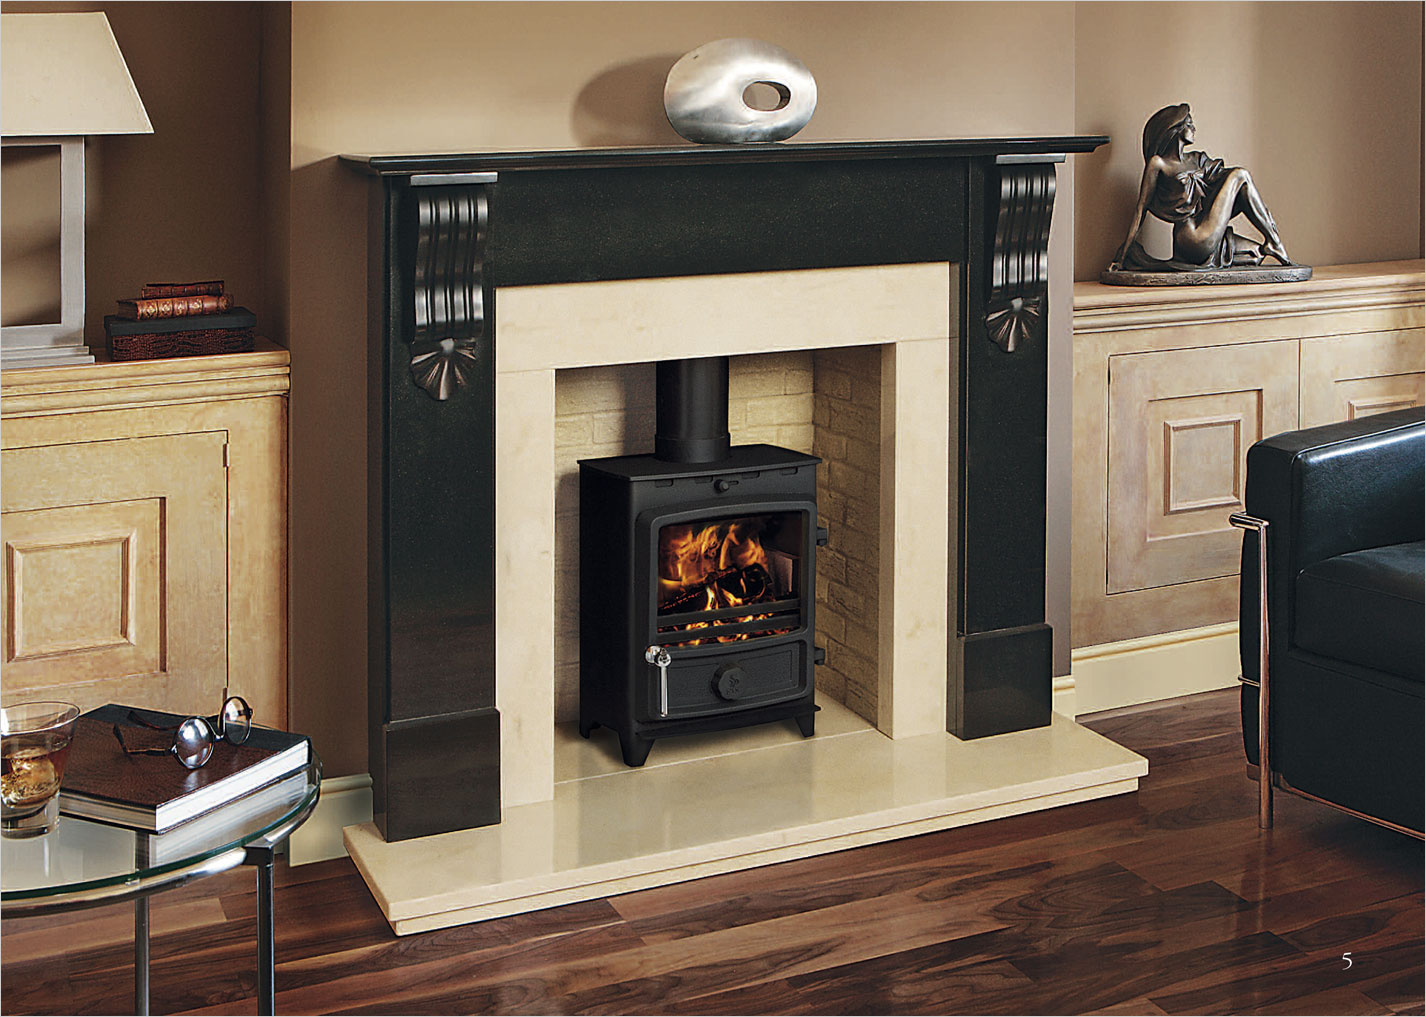 FDC_Stoves_S_Compressed_2015-7